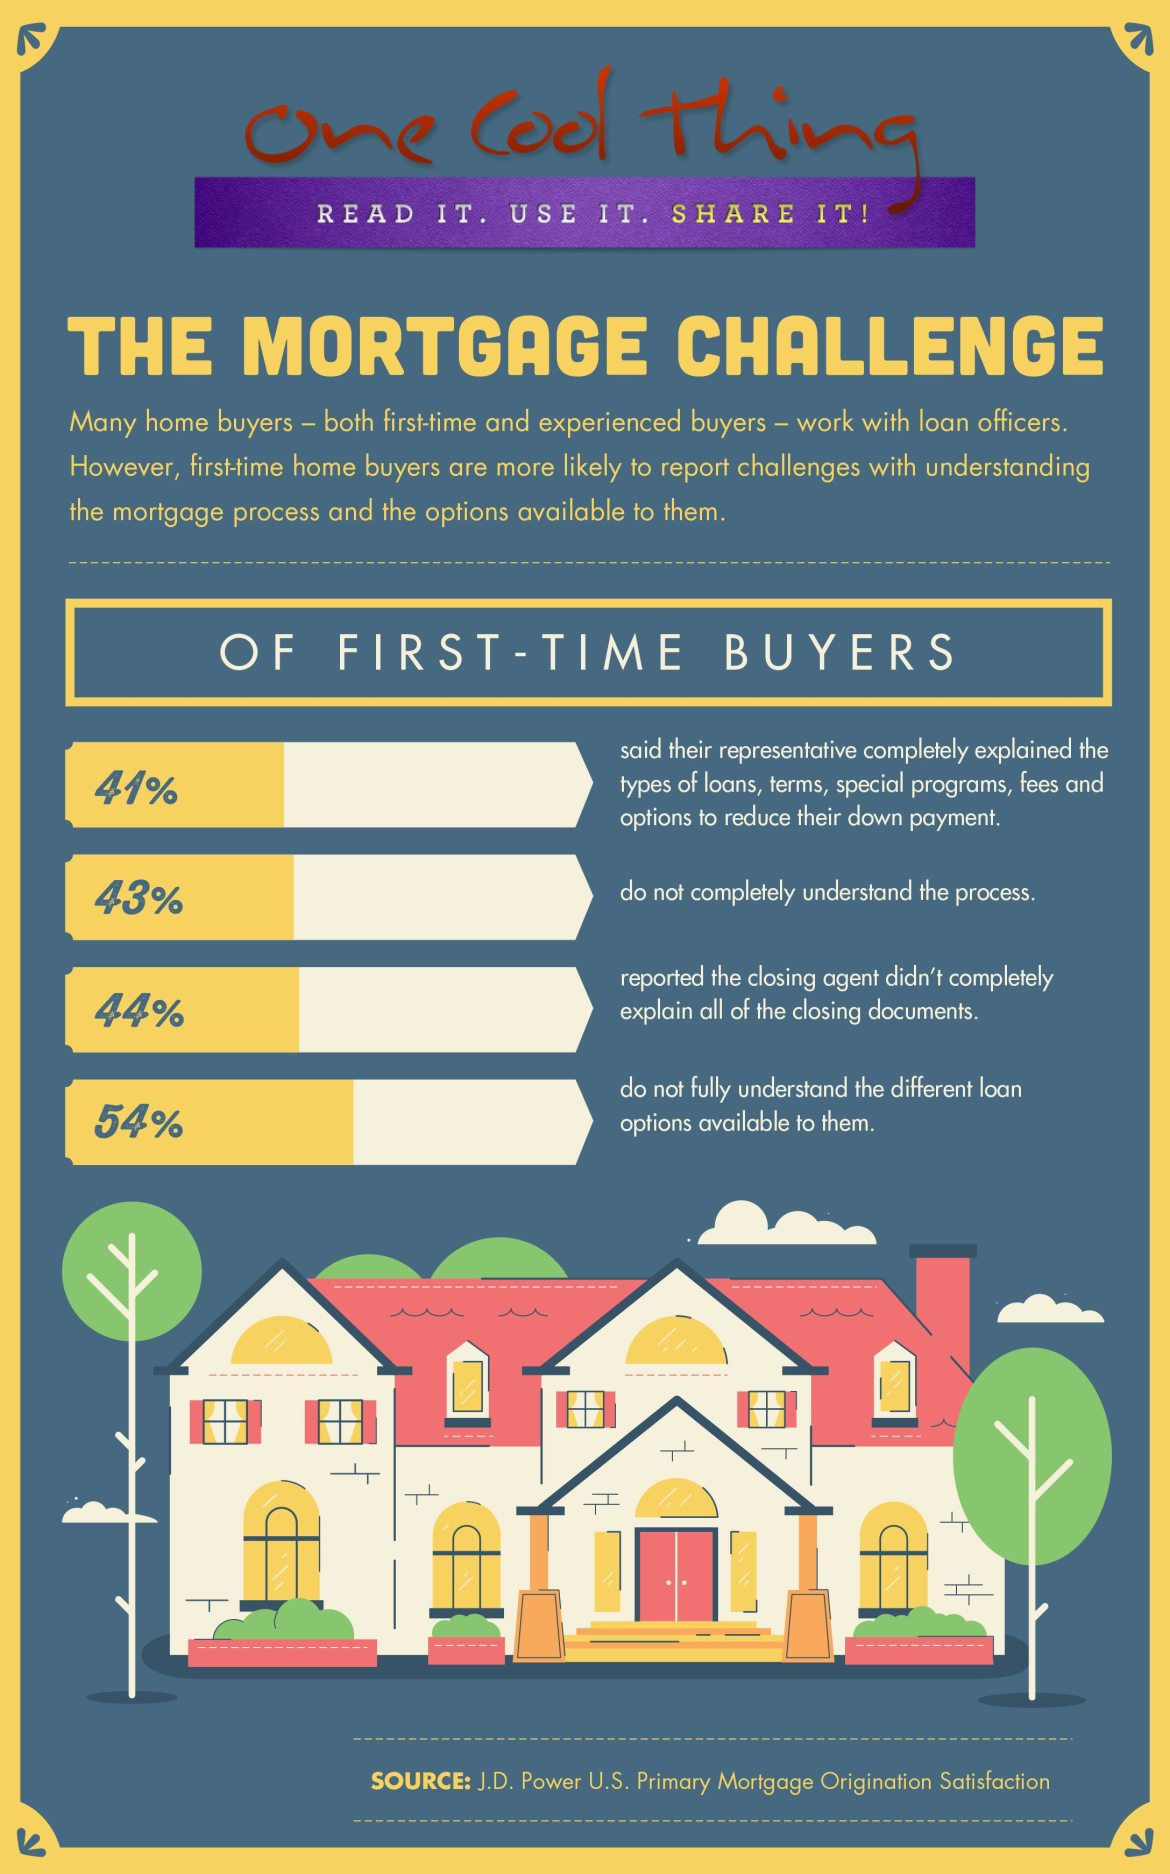 JDPDXRealEstate First Time Home Buyers